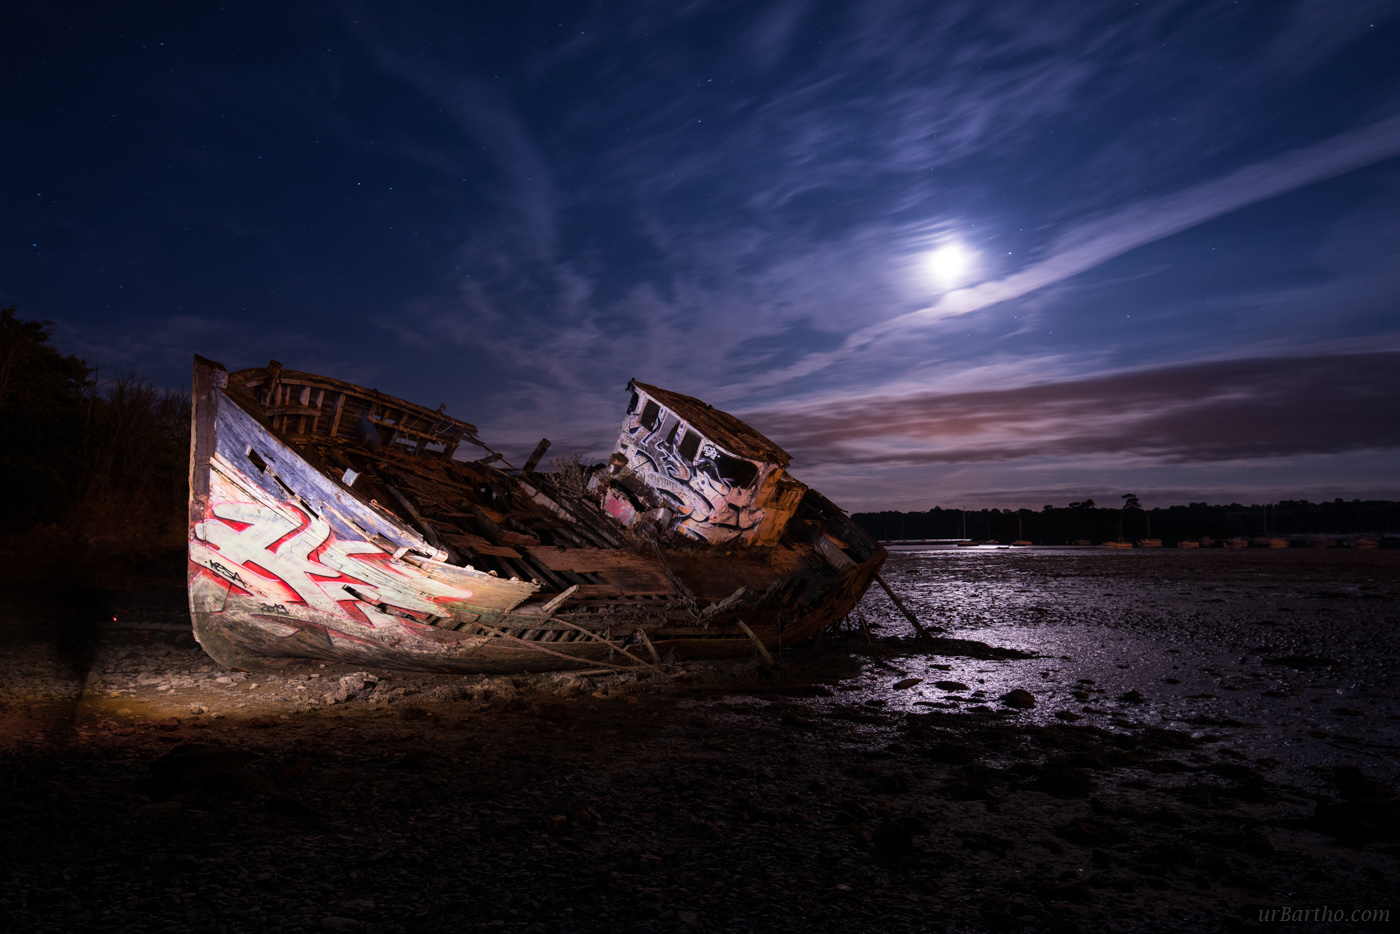 Moonlighters' Shipwreck by Guillaume Prugniel J